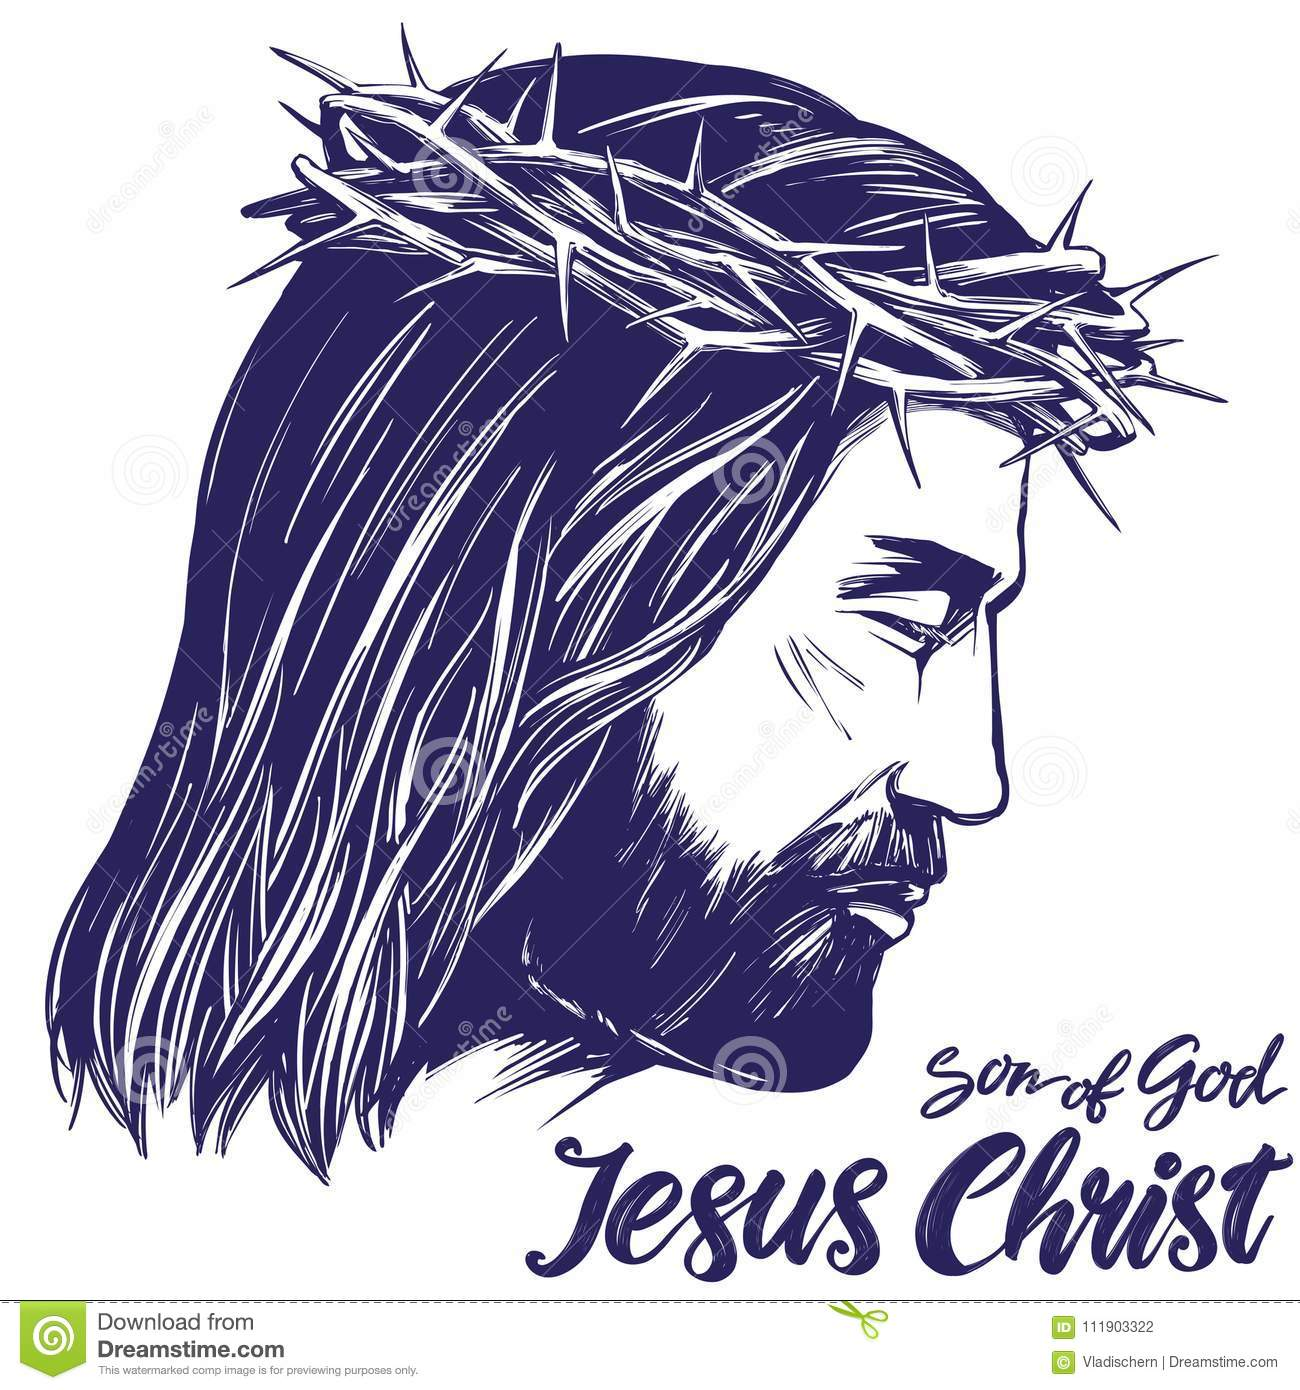 Jesus christ the son of god symbol of christianity hand drawn jesus christ the son of god symbol of christianity hand drawn vector illustration sketch buycottarizona Image collections